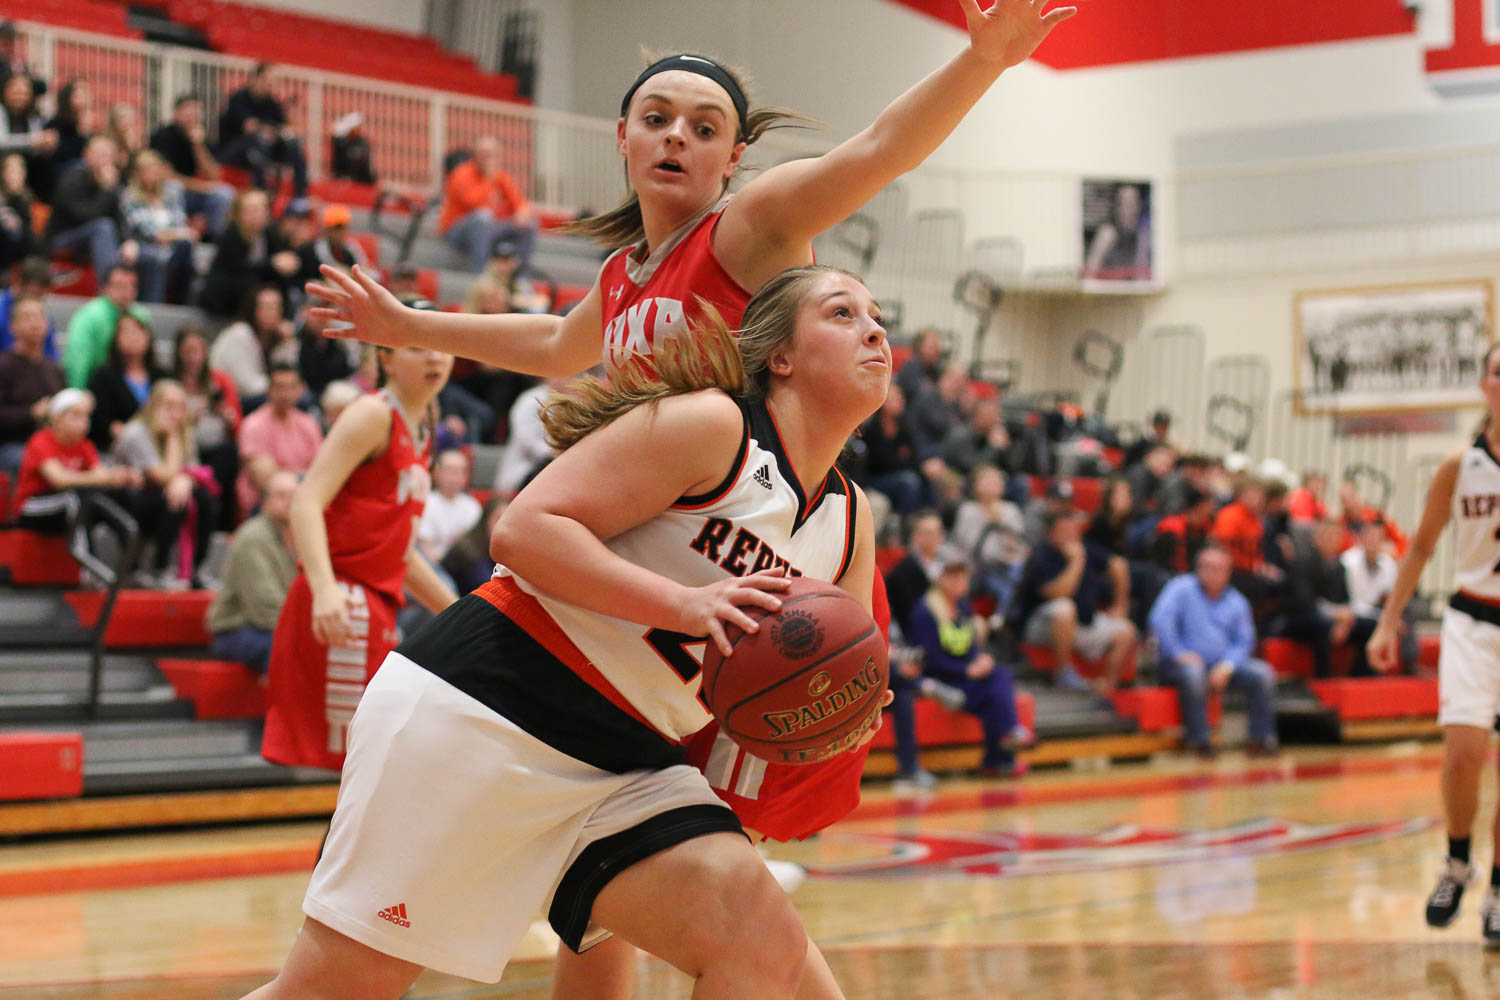 Photos: Varsity Girls Basketball – District Championship Vs Nixa